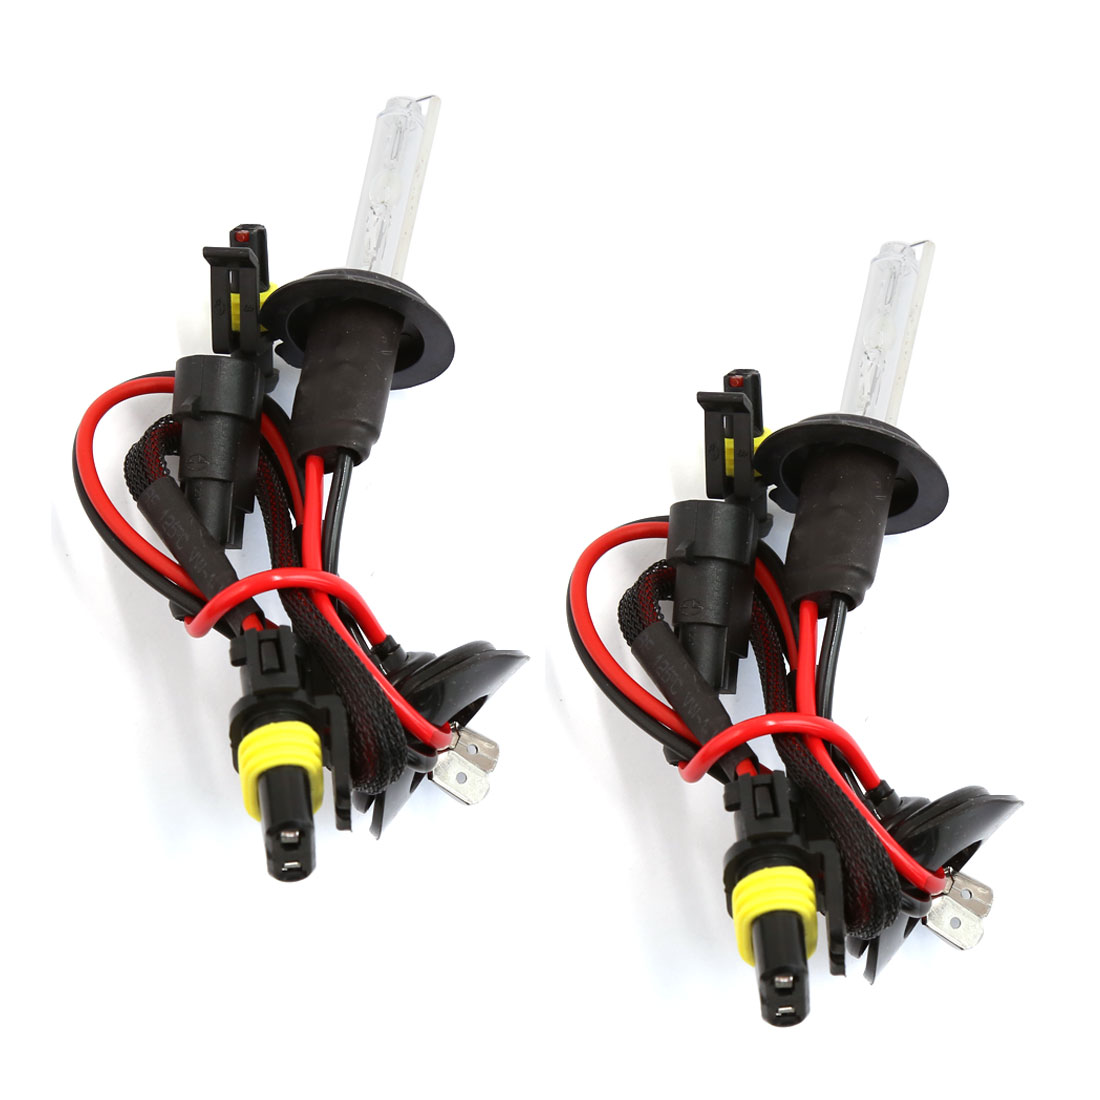 2 Pcs H7 6000K Xenon HID Light Lamp Bulb Headlight for Auto Car